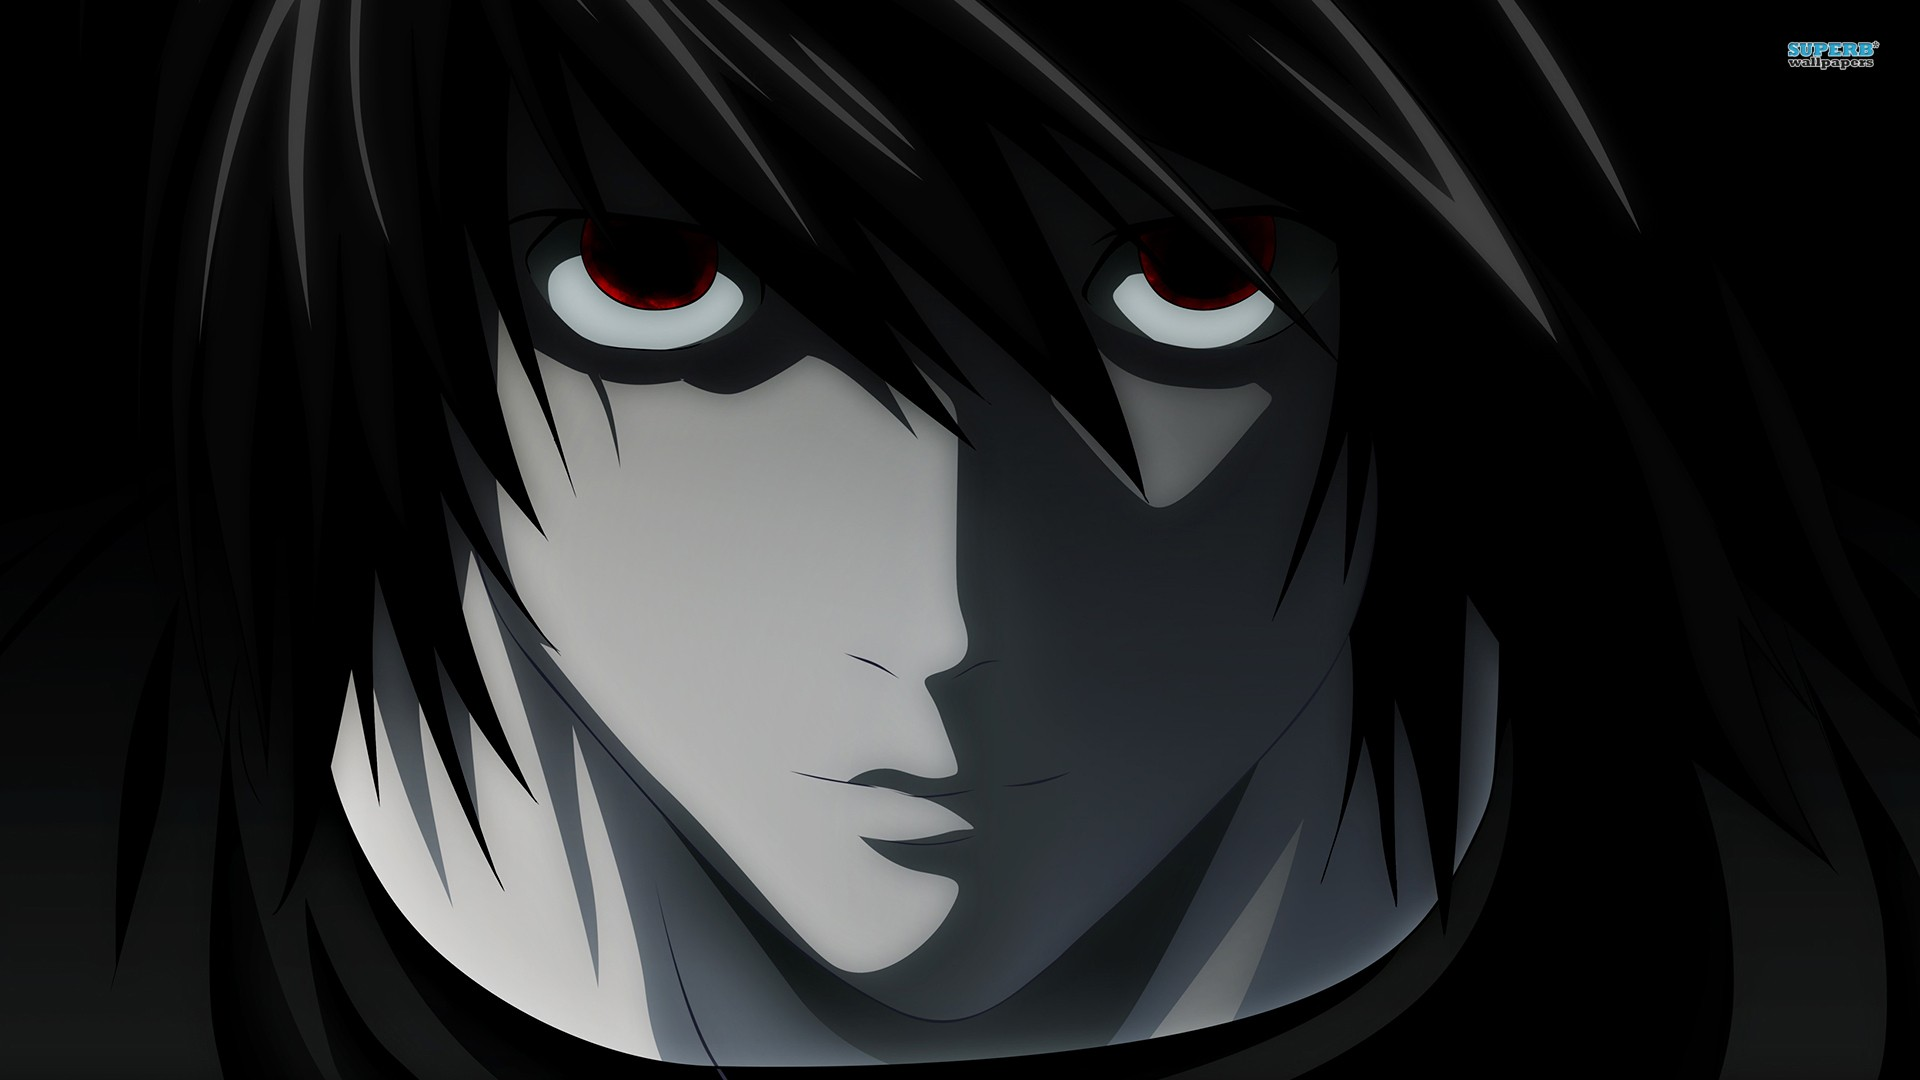 Death Note HD Wallpapers  Backgrounds  Wallpaper  1920x1080